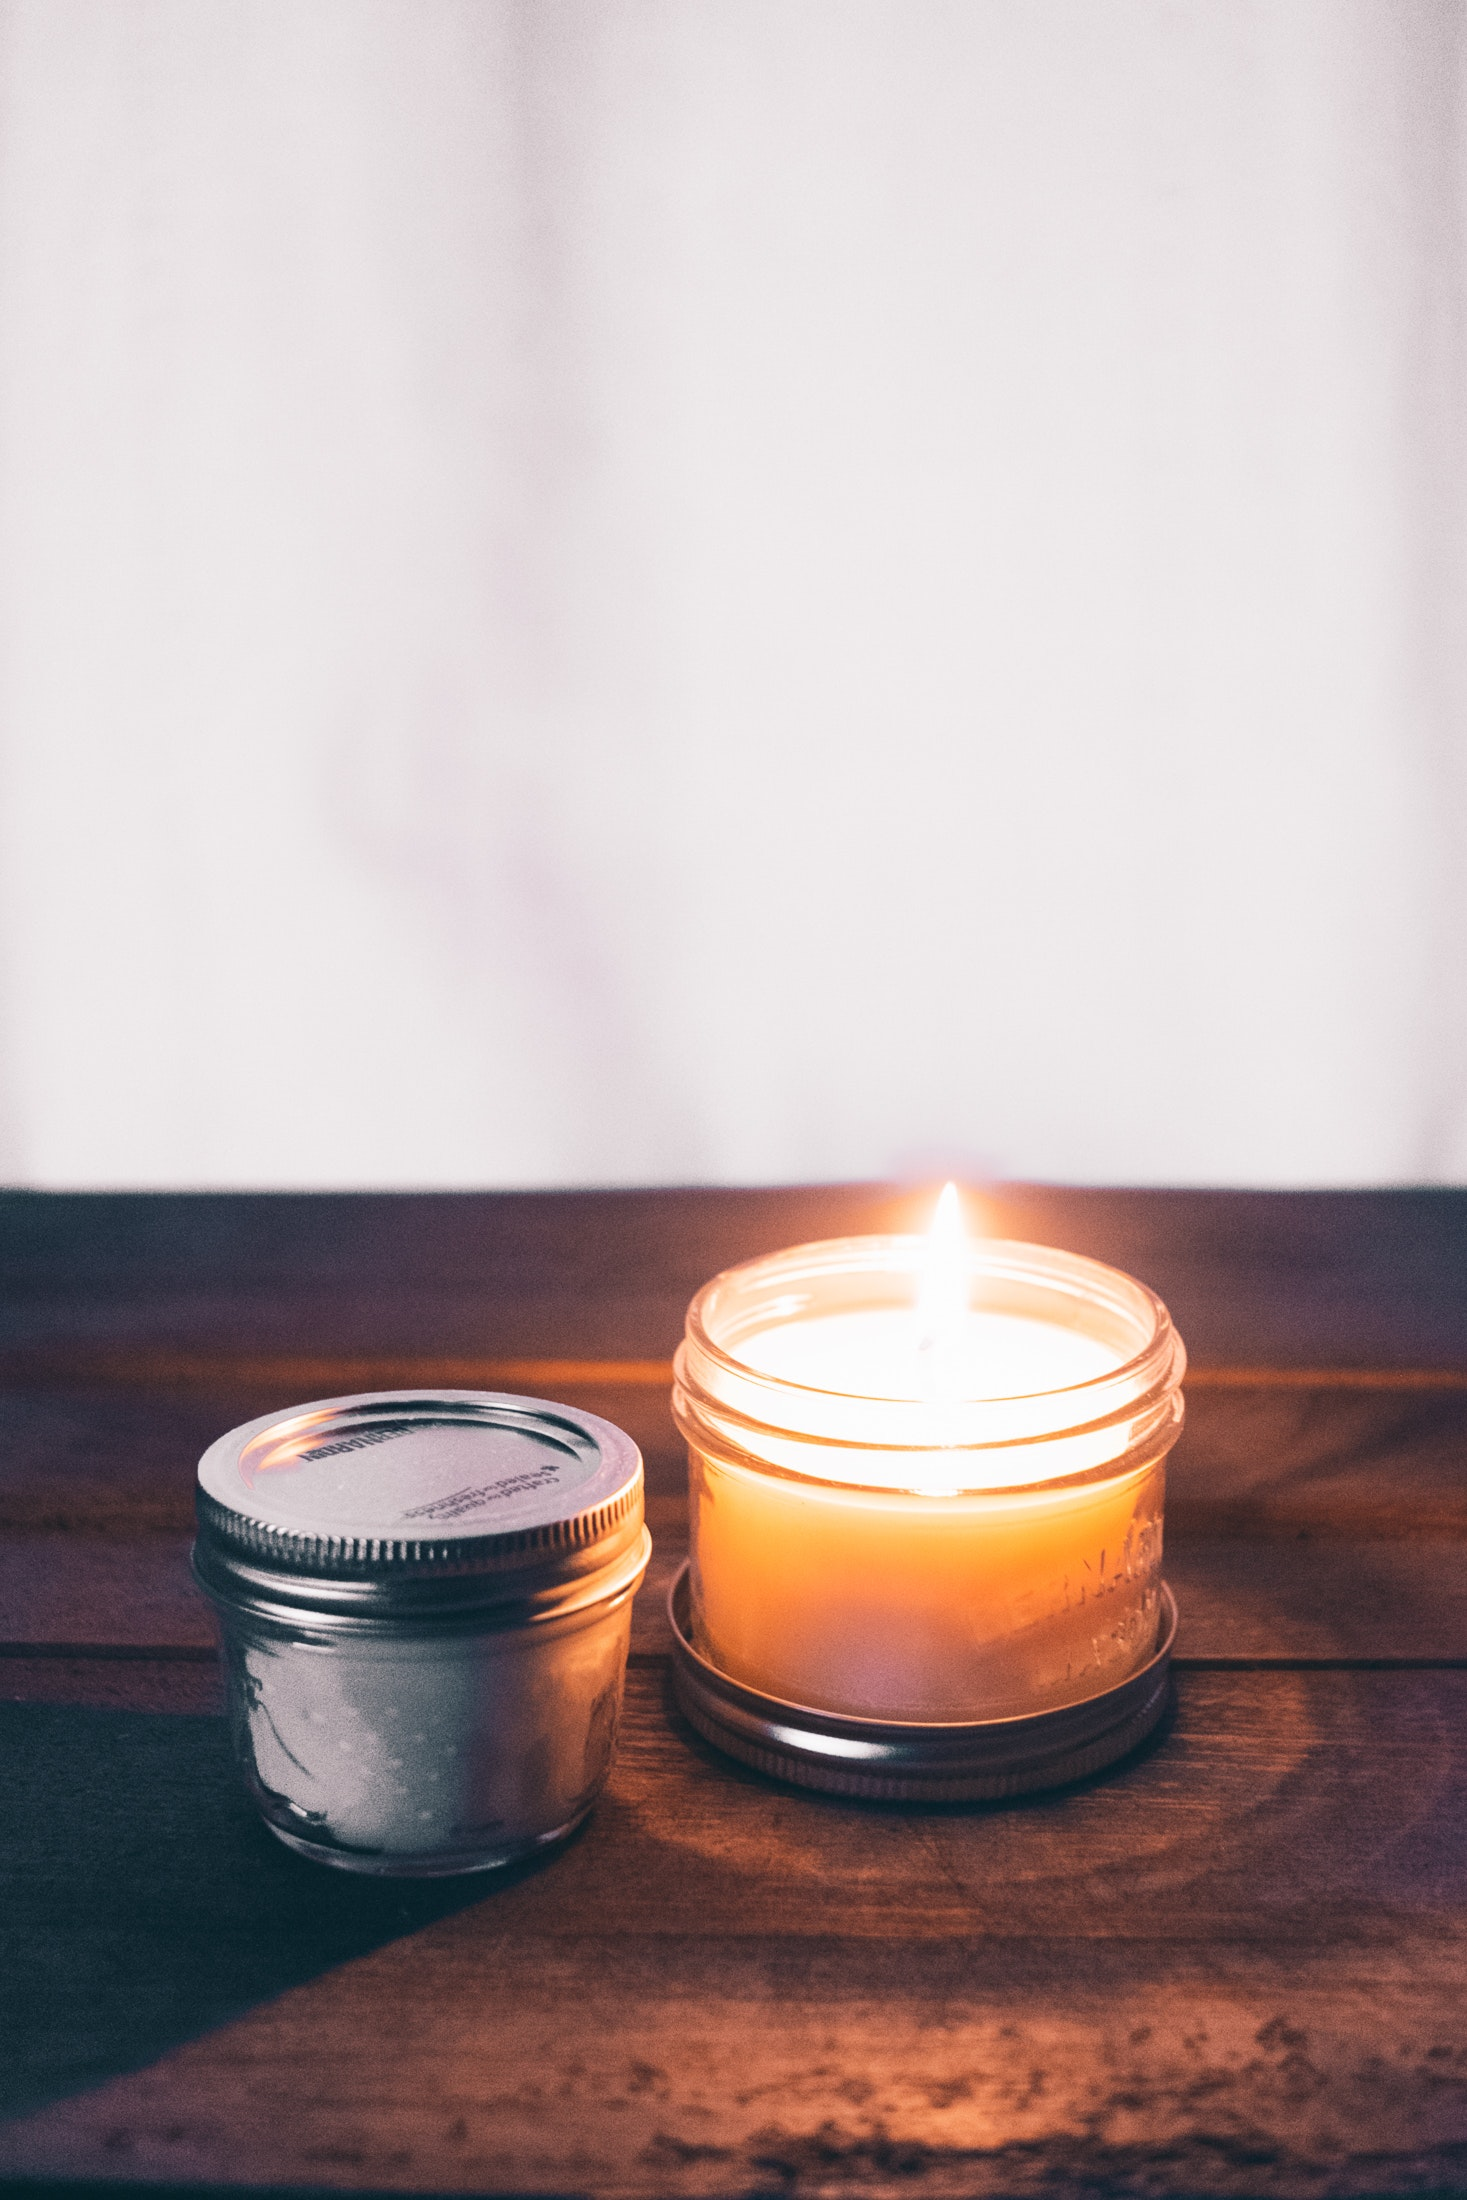 Simple image of candle in glass jar on table